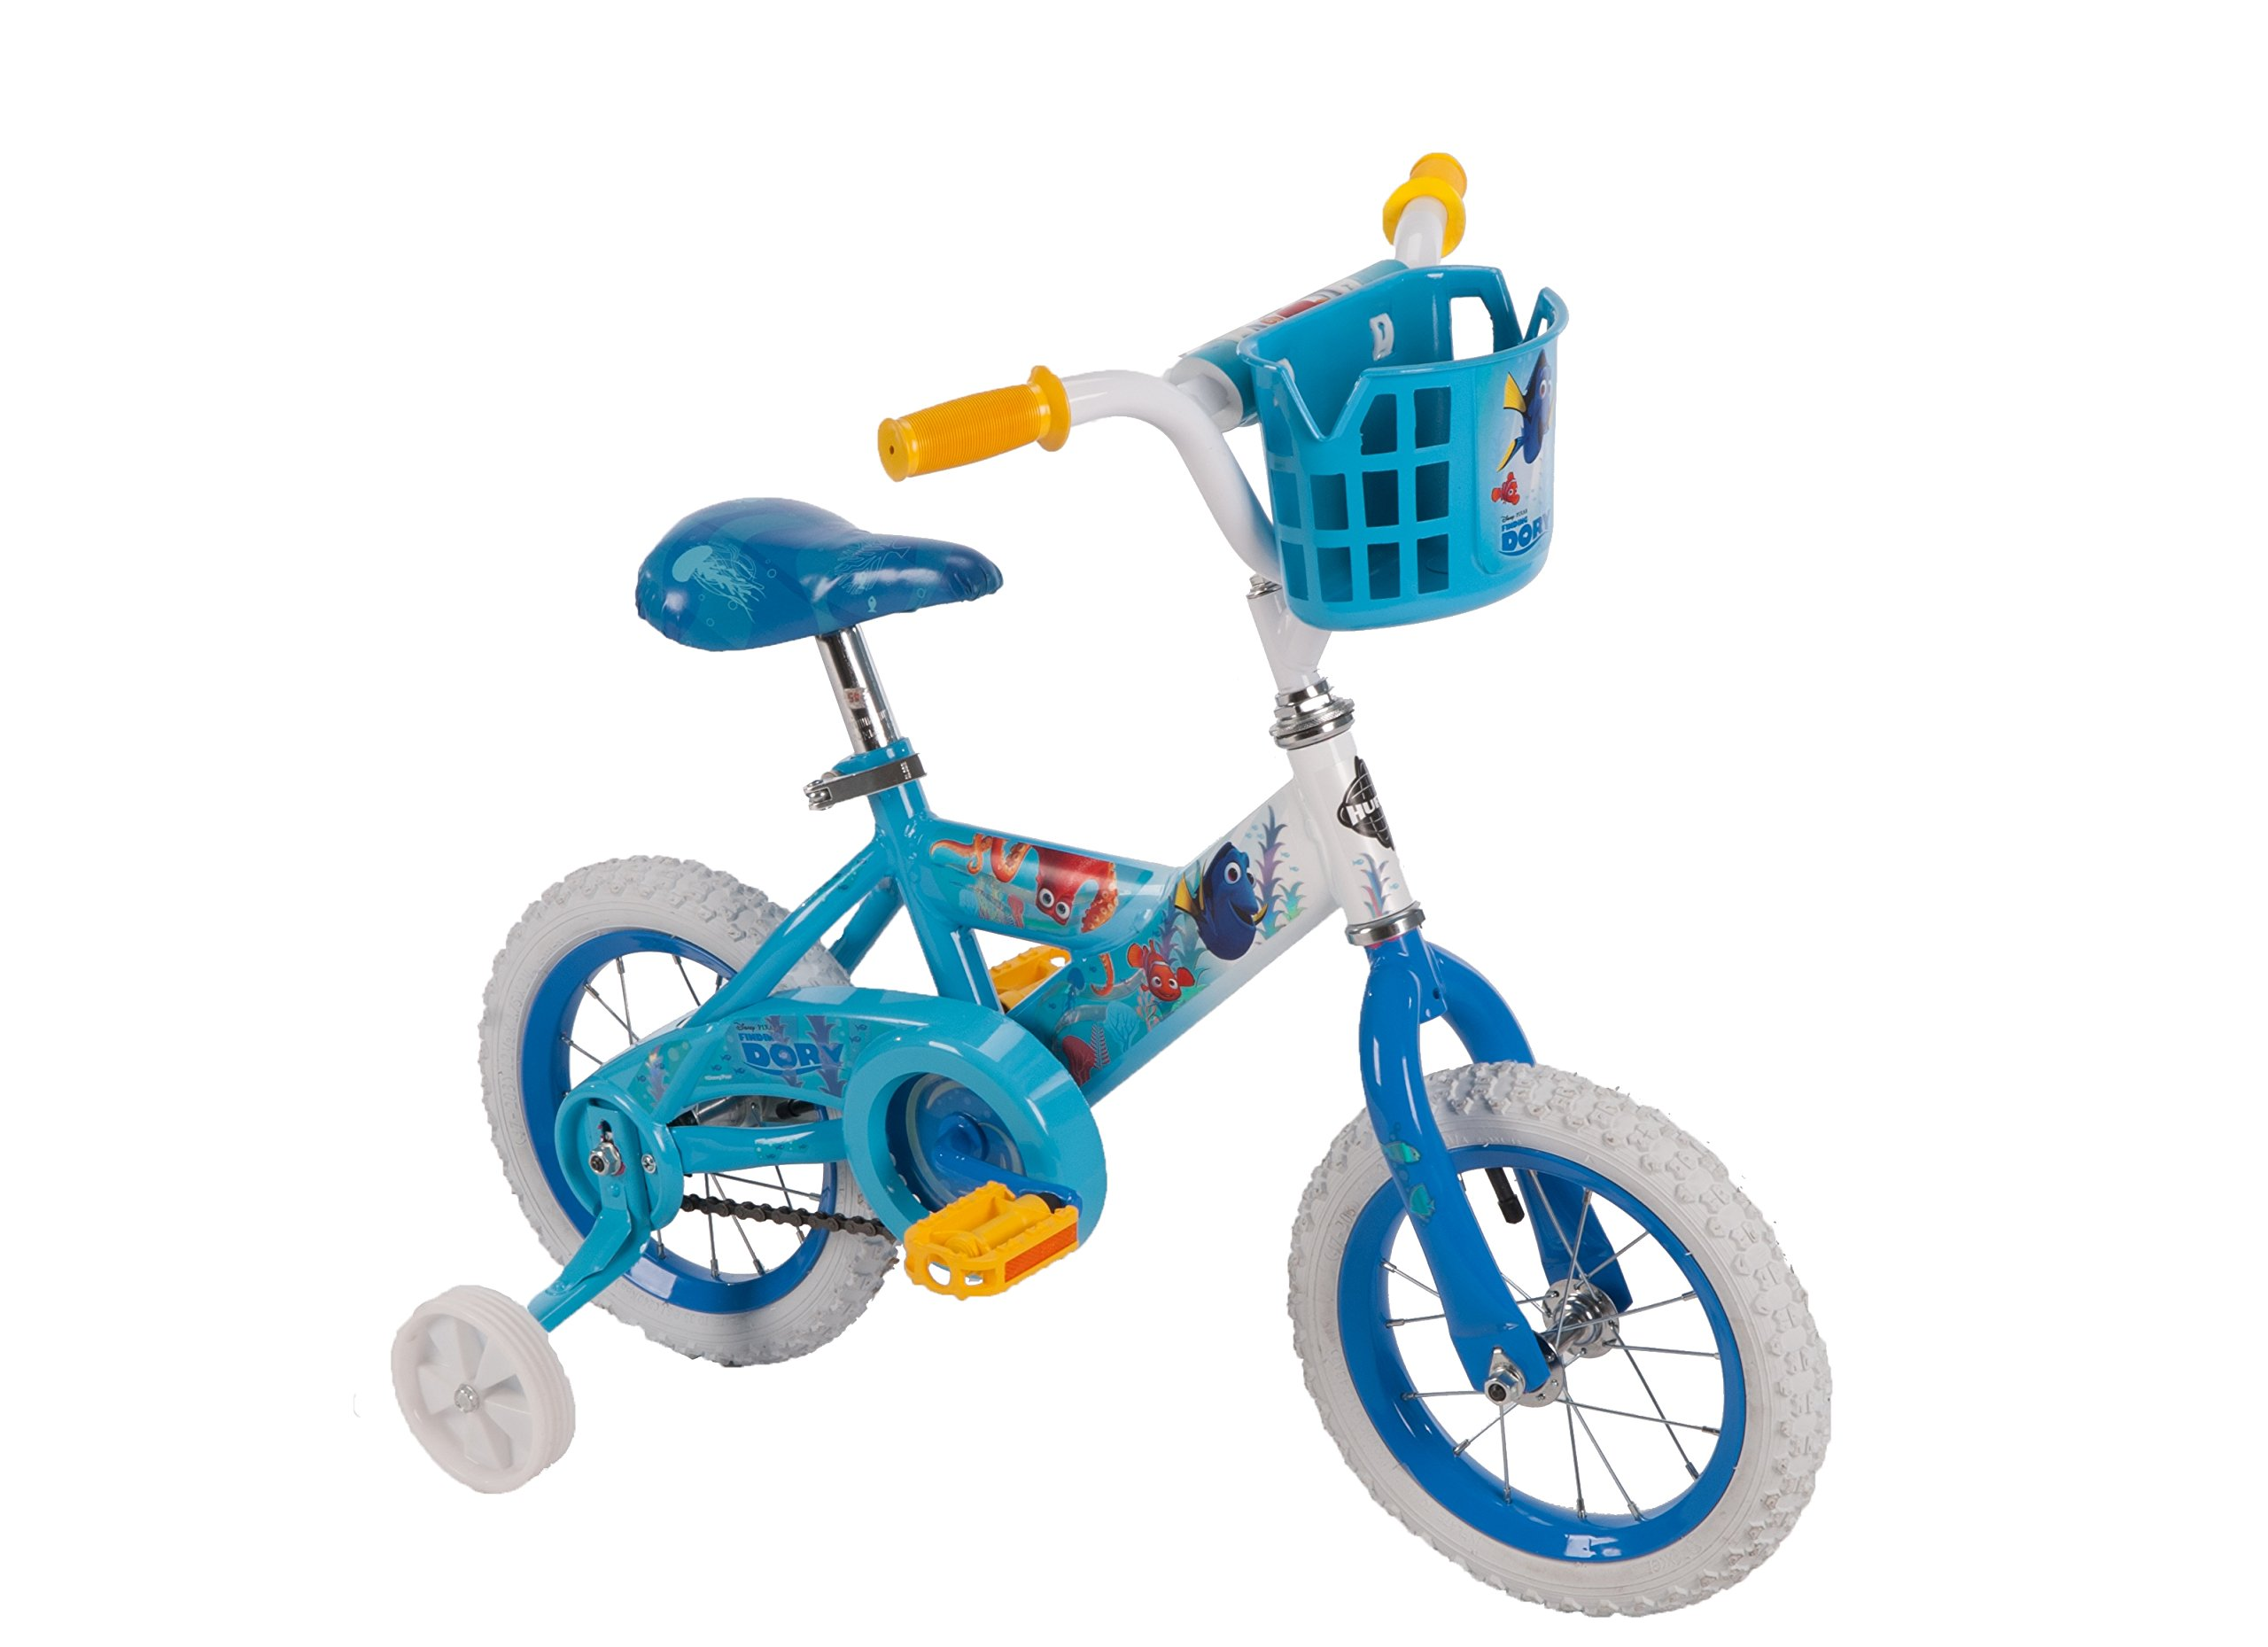 Huffy 12'' Disney Pixar Finding Dory Bike with Training Wheels & Basket, Blue